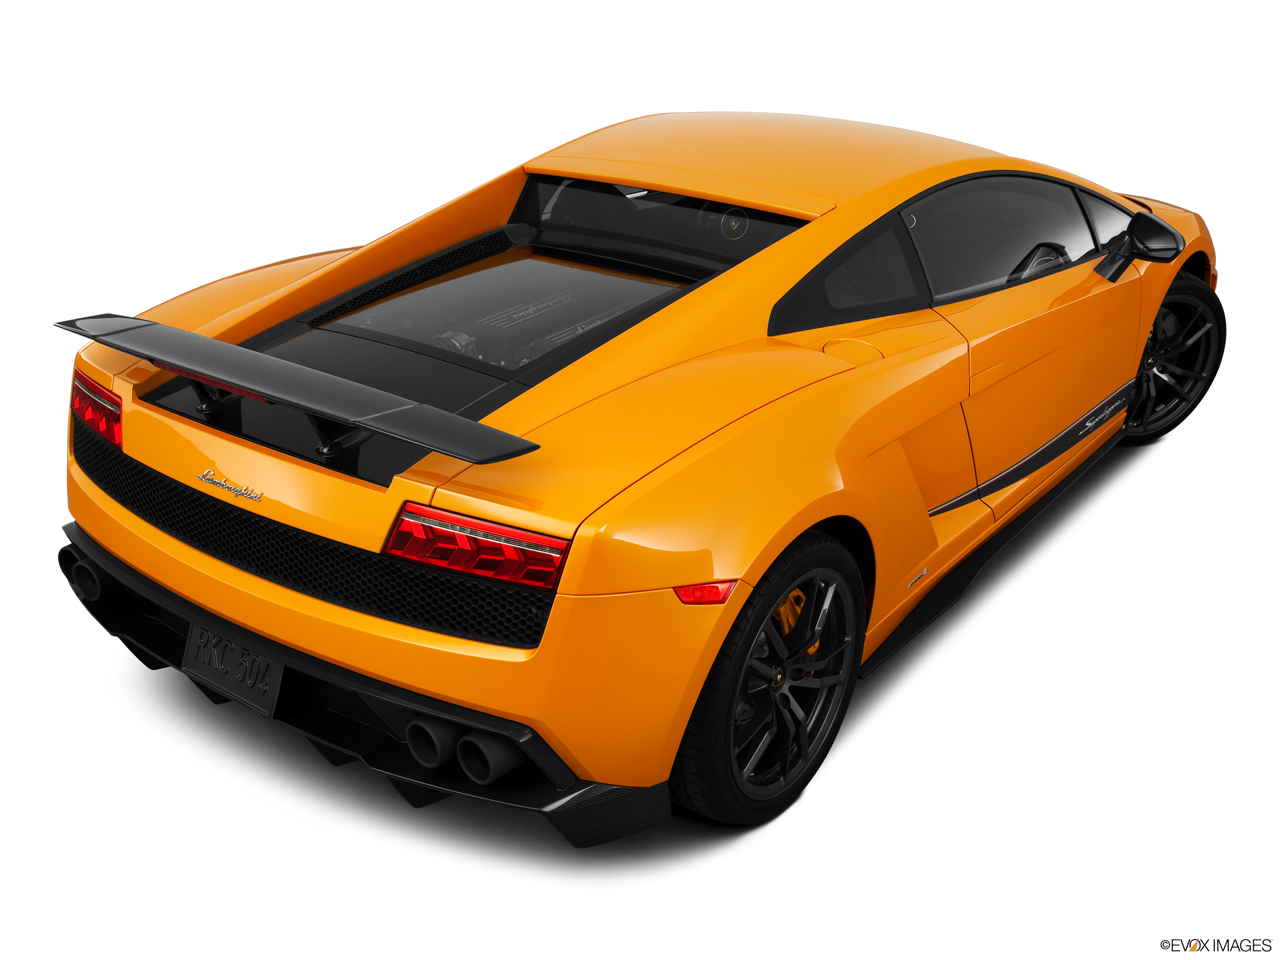 2014 Lamborghini Gallardo Coupe Lp570 4 Superleggera Edizione